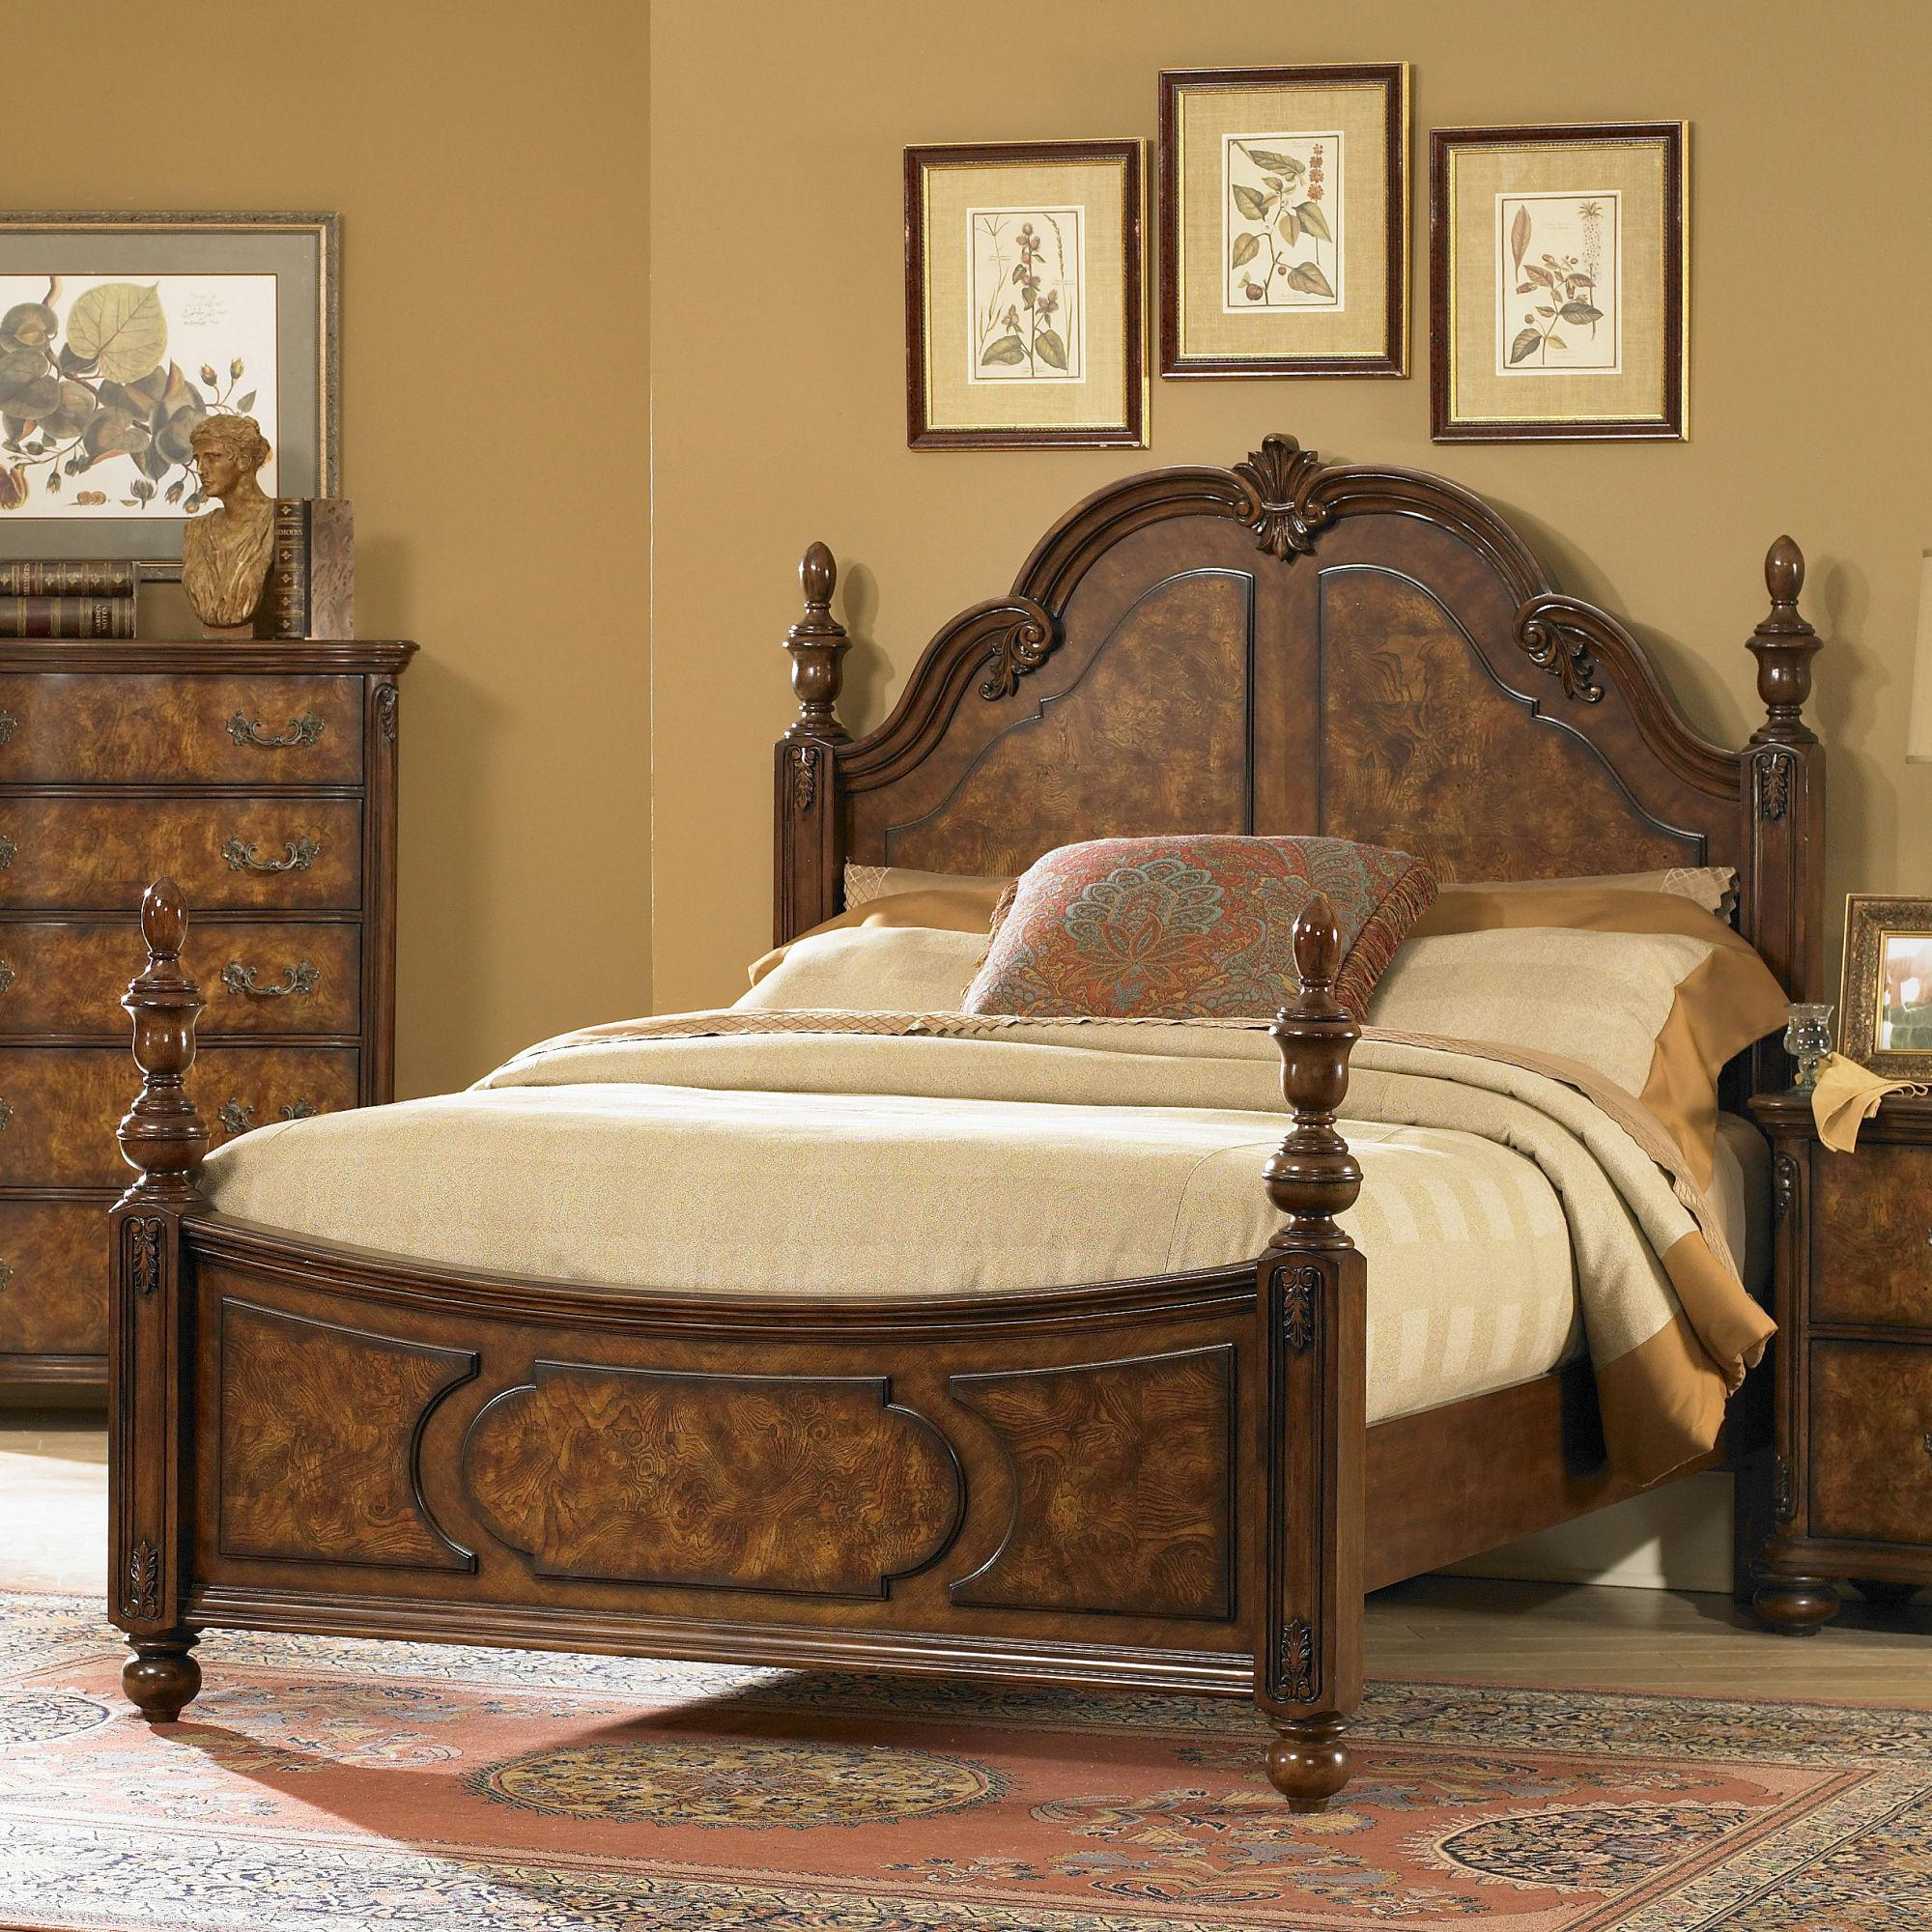 bedroom furniture sets with bed photo - 1